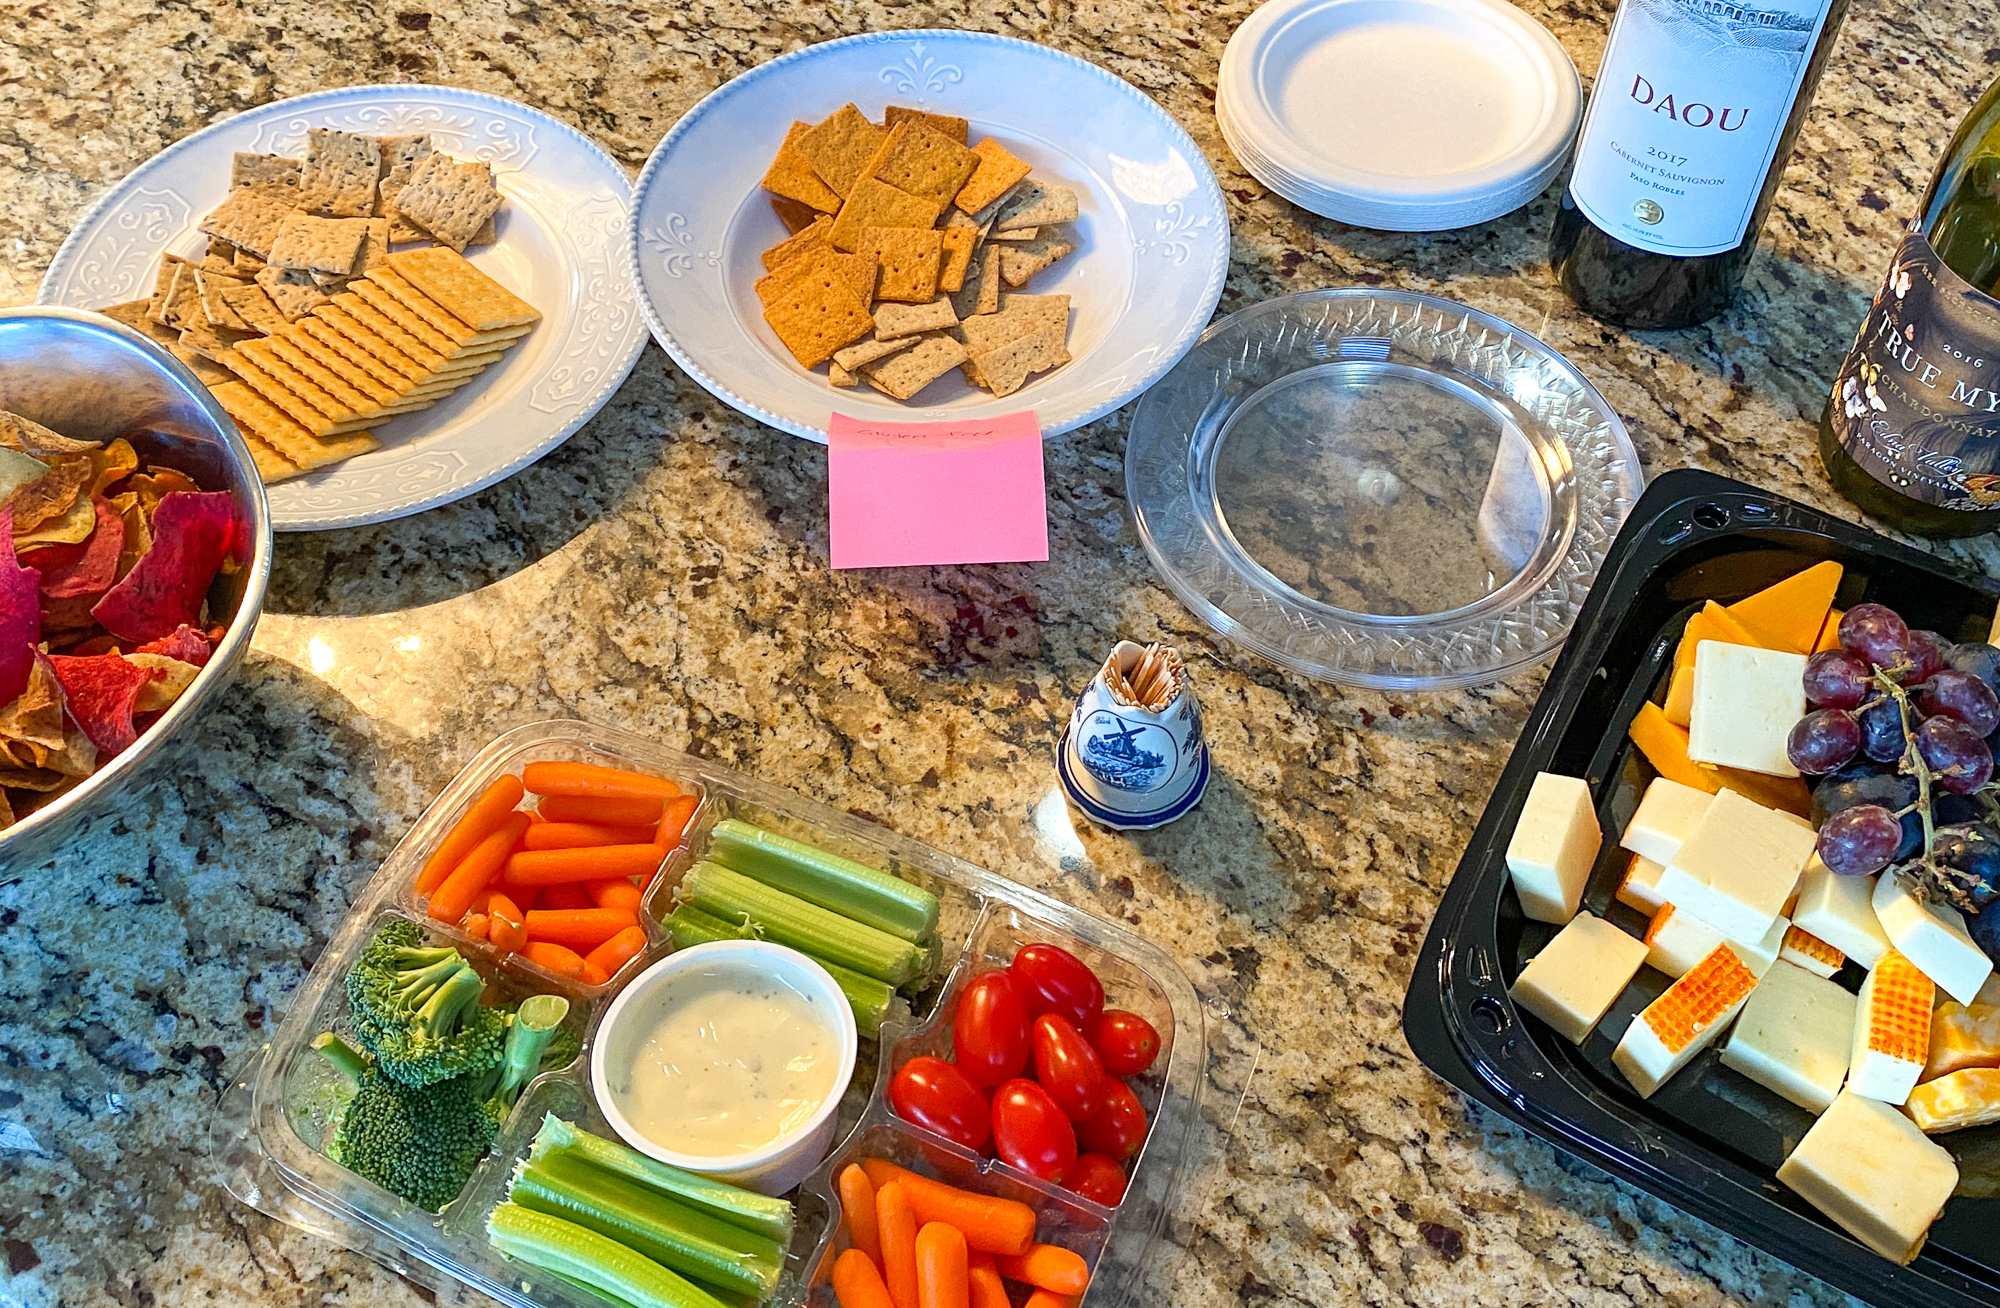 Keep snacks simple at your party